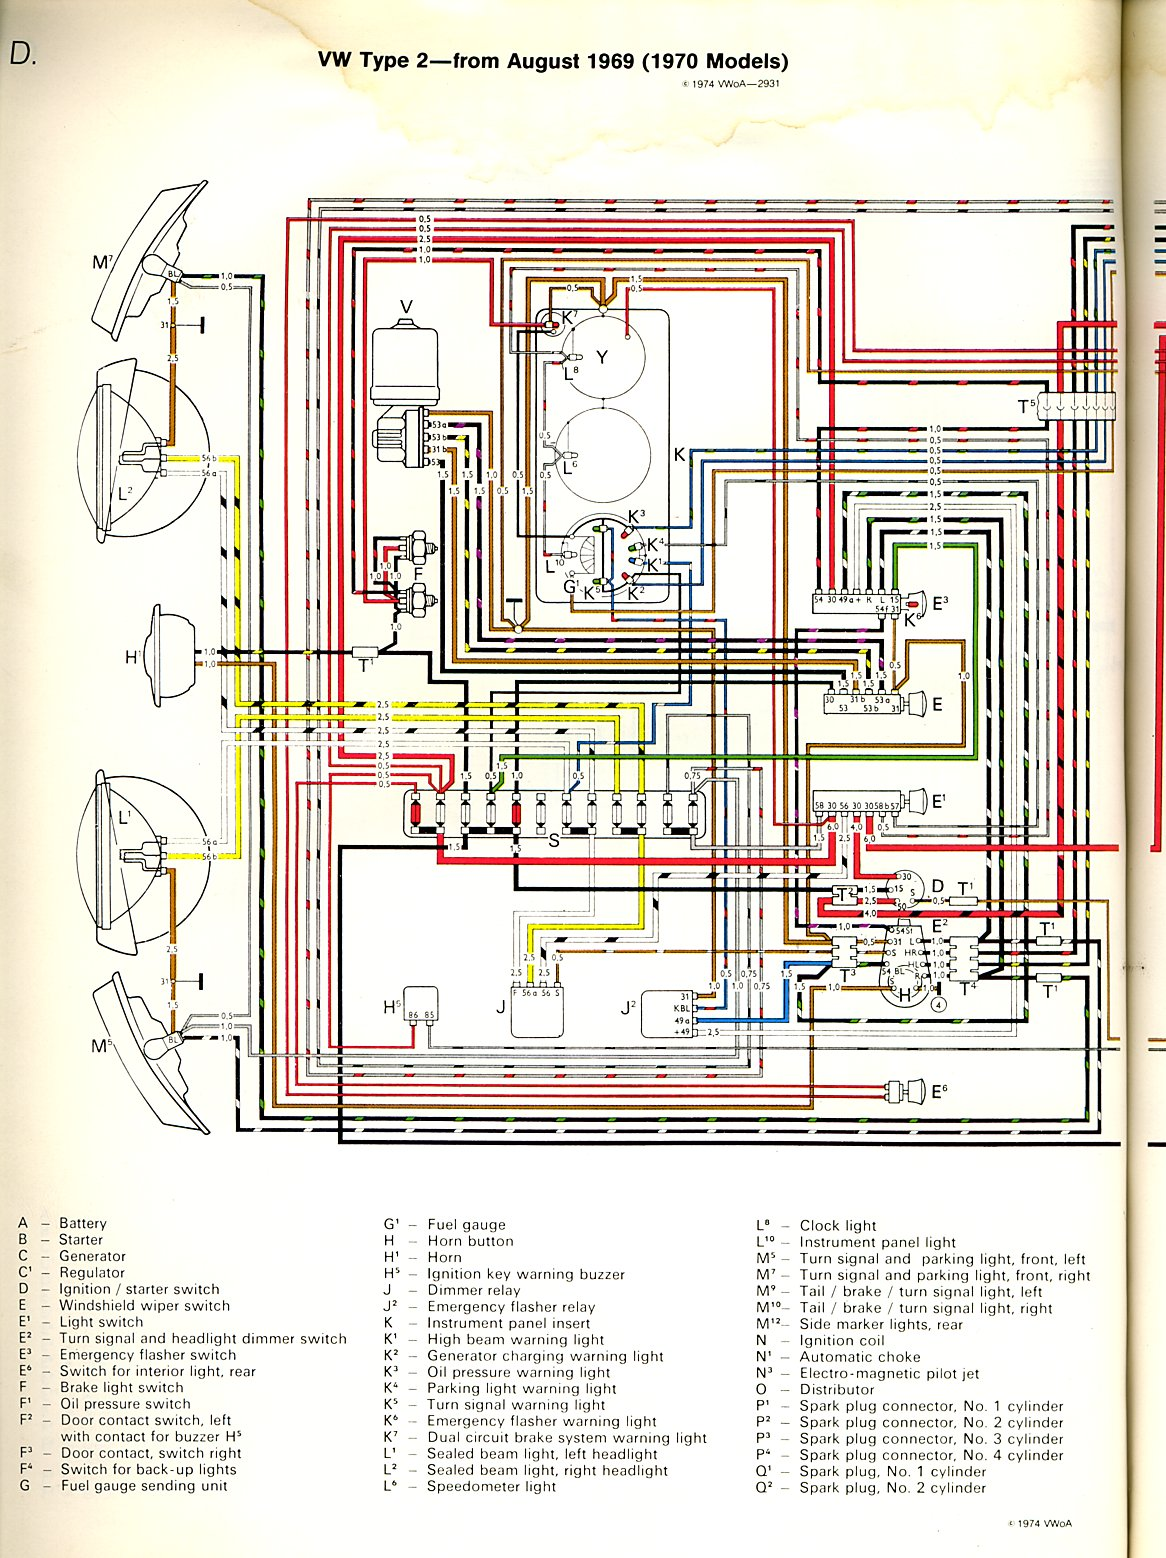 1970 Vw Beetle Tail Light Wiring Diagram : Thesamba type wiring diagrams